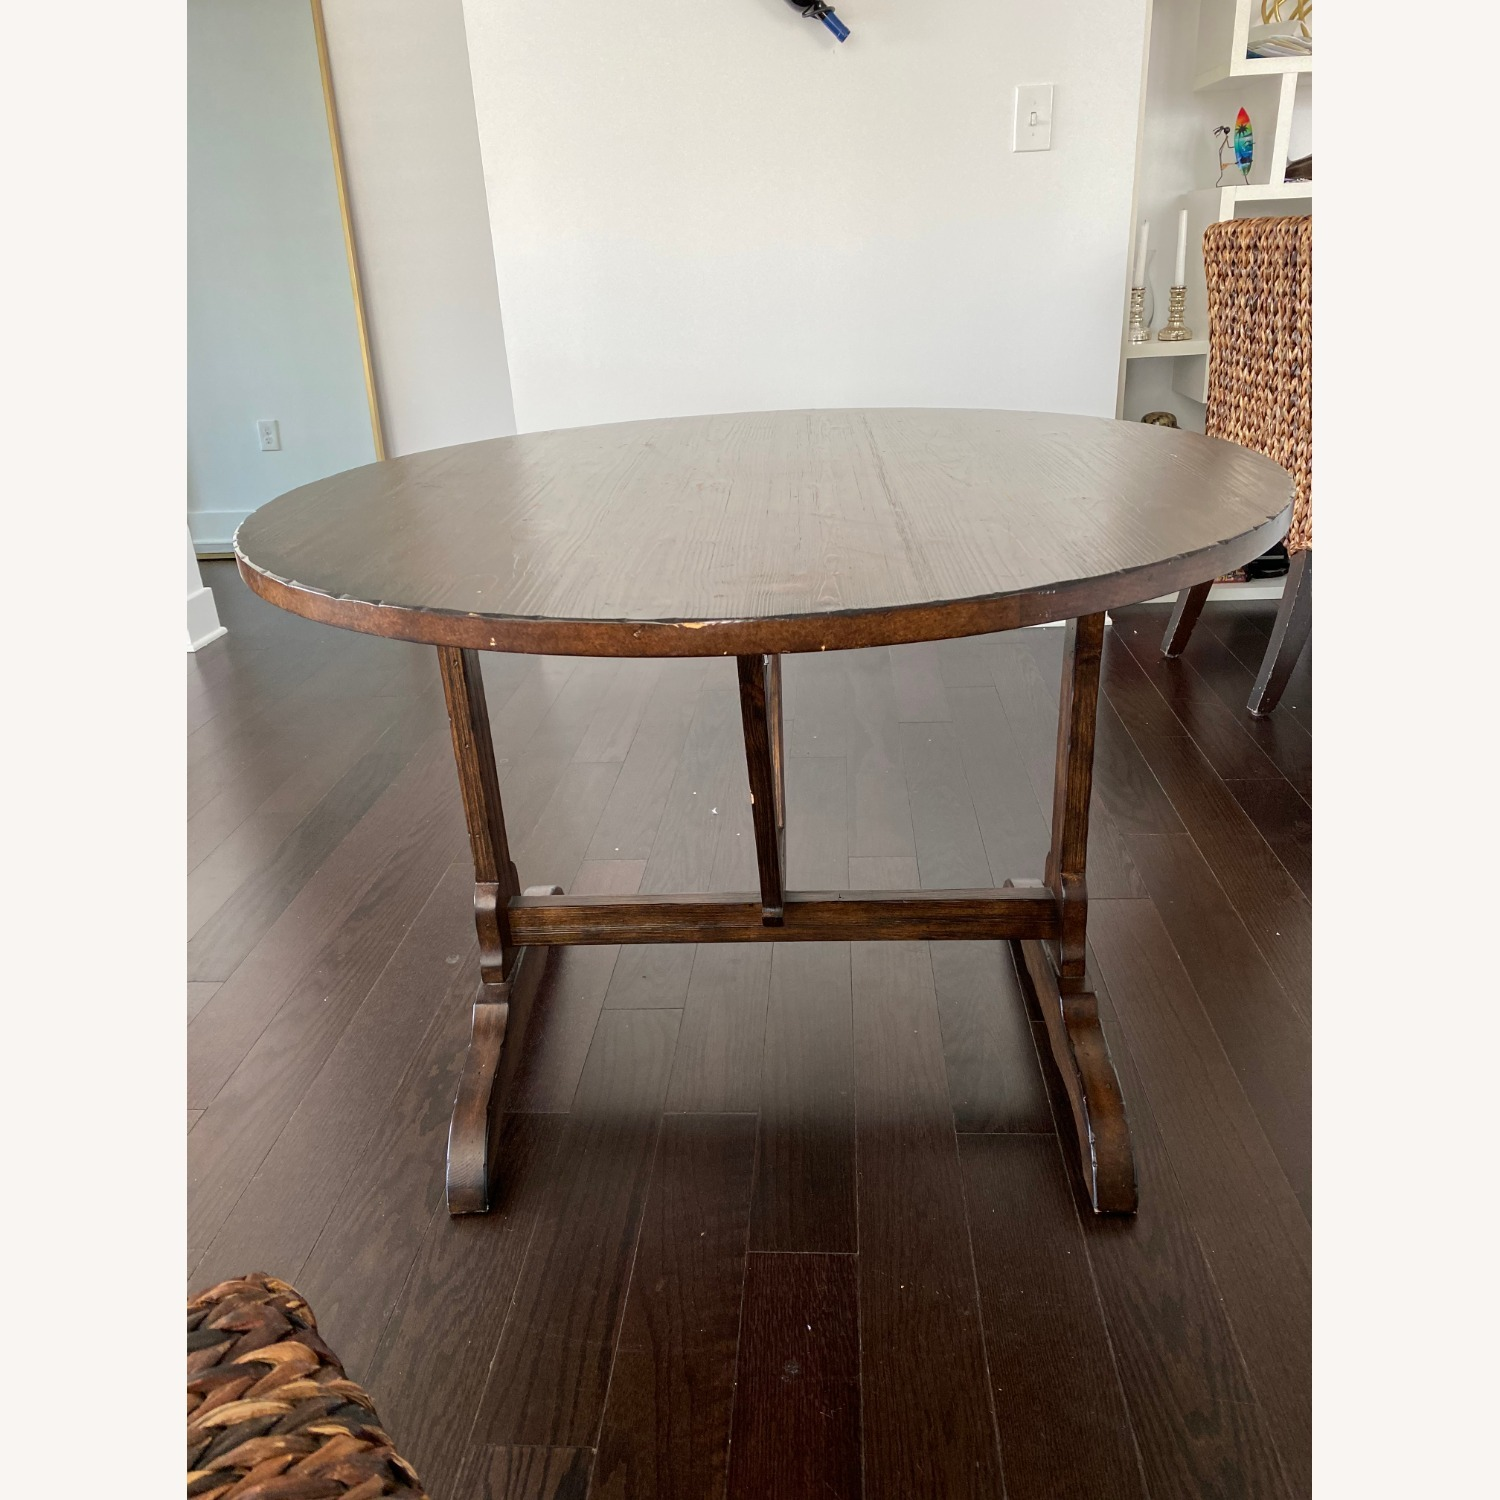 Pottery Barn Dining Table and Seagrass Chair Set - image-3